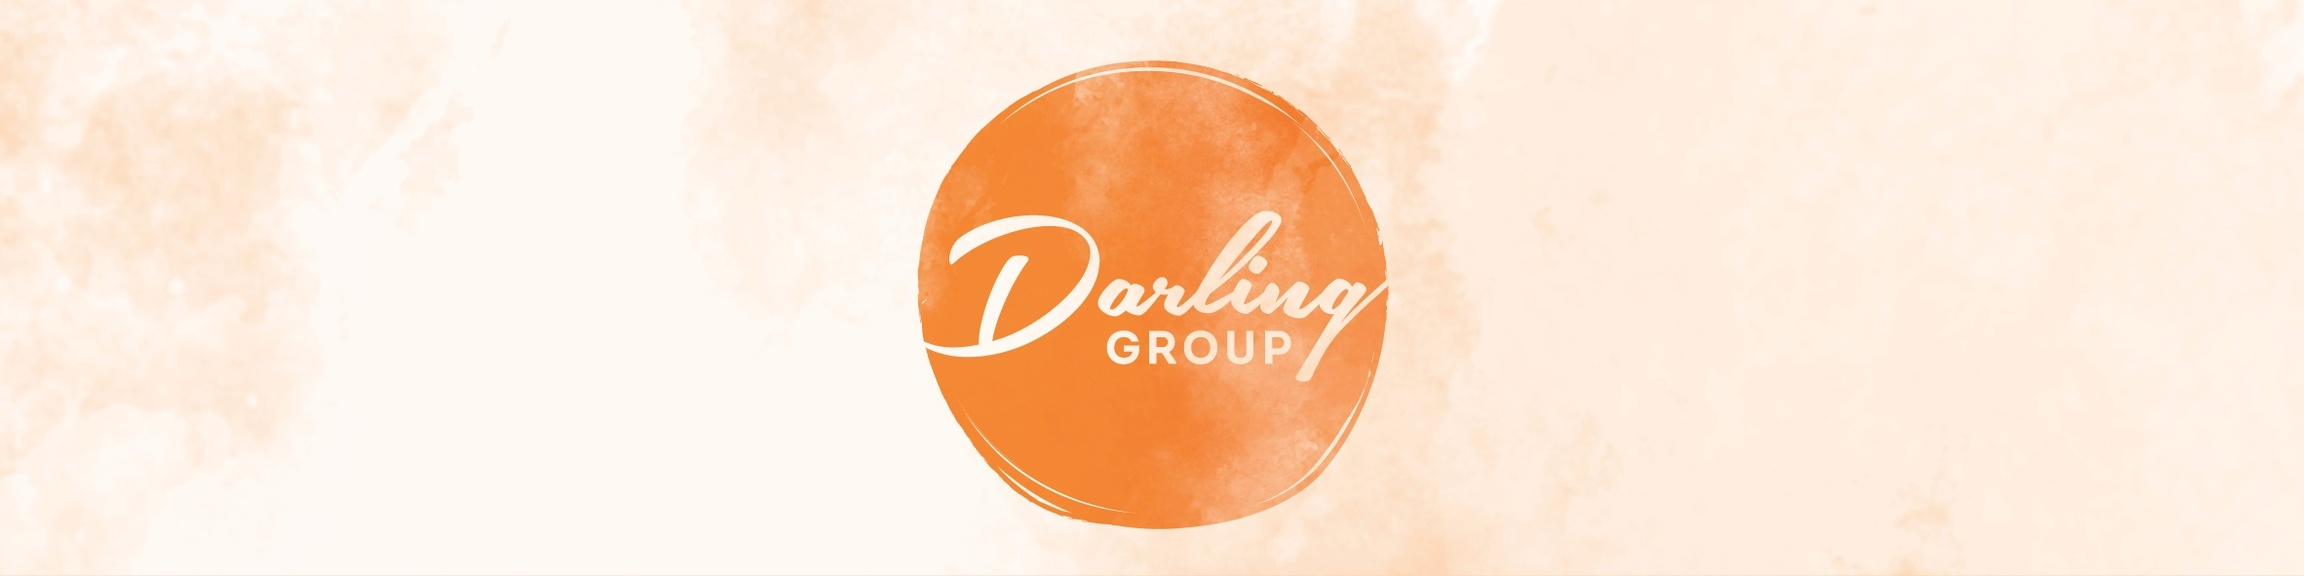 Darling Group